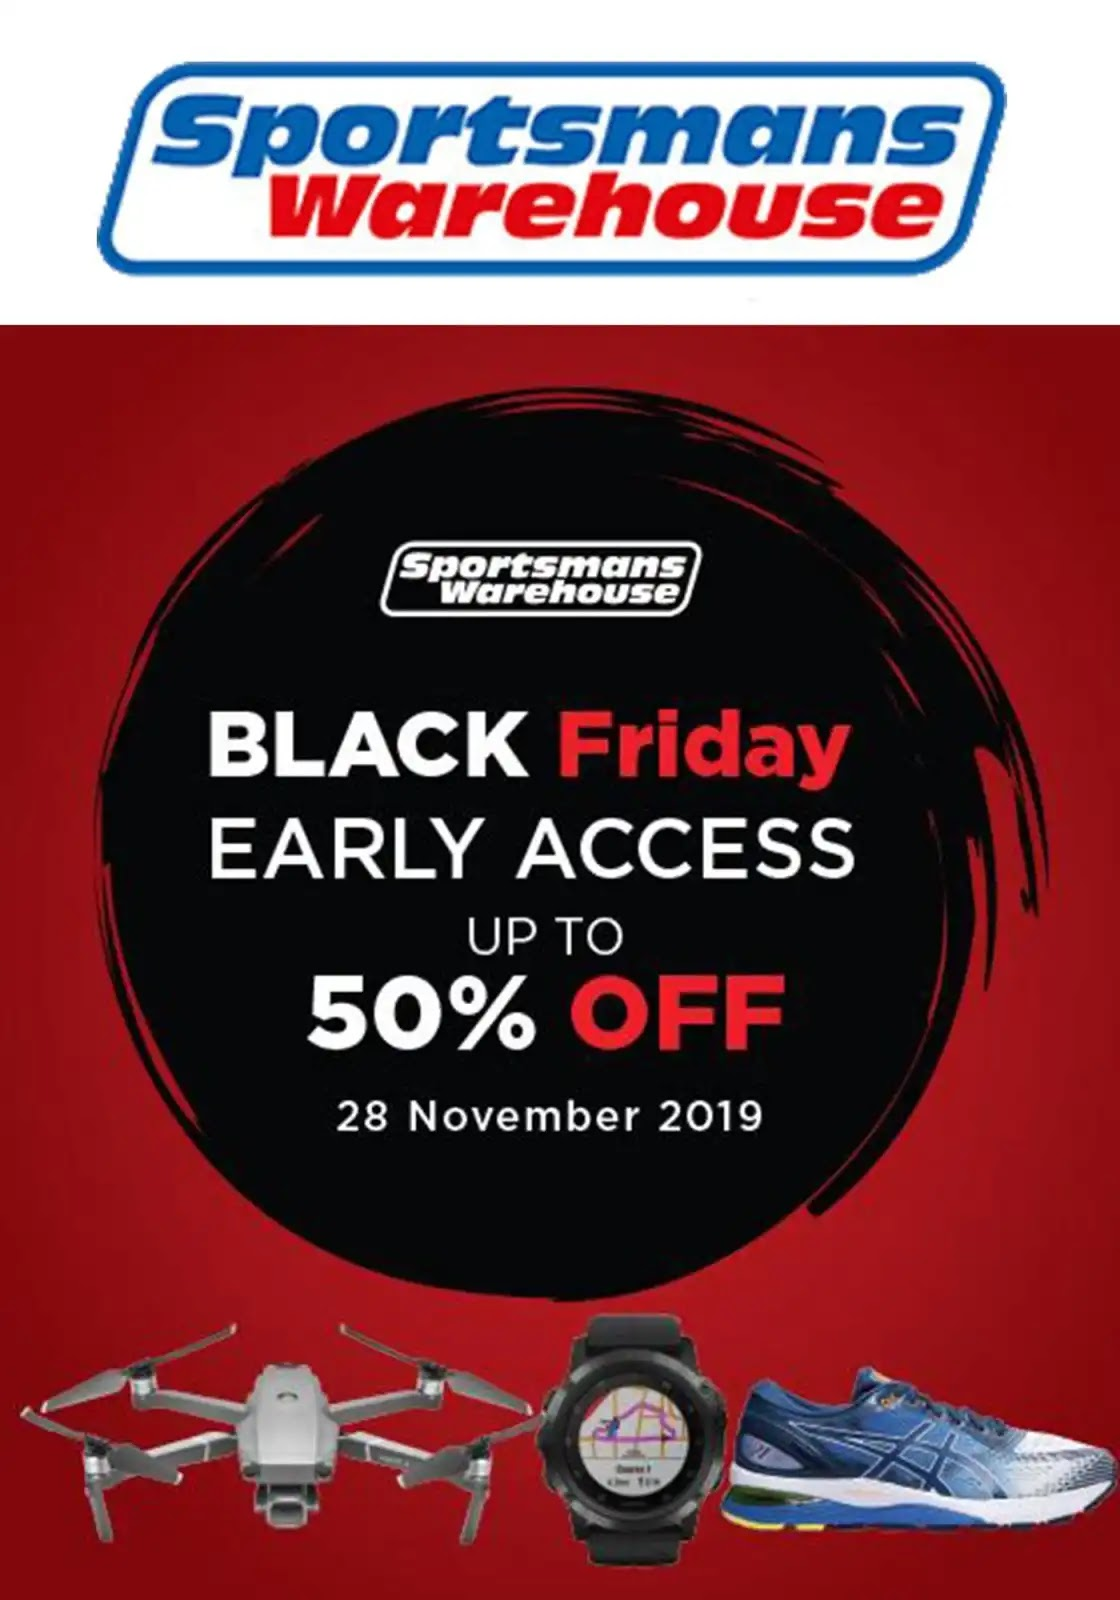 Sportsmans Warehouse Black Friday deals up to 50% OFF